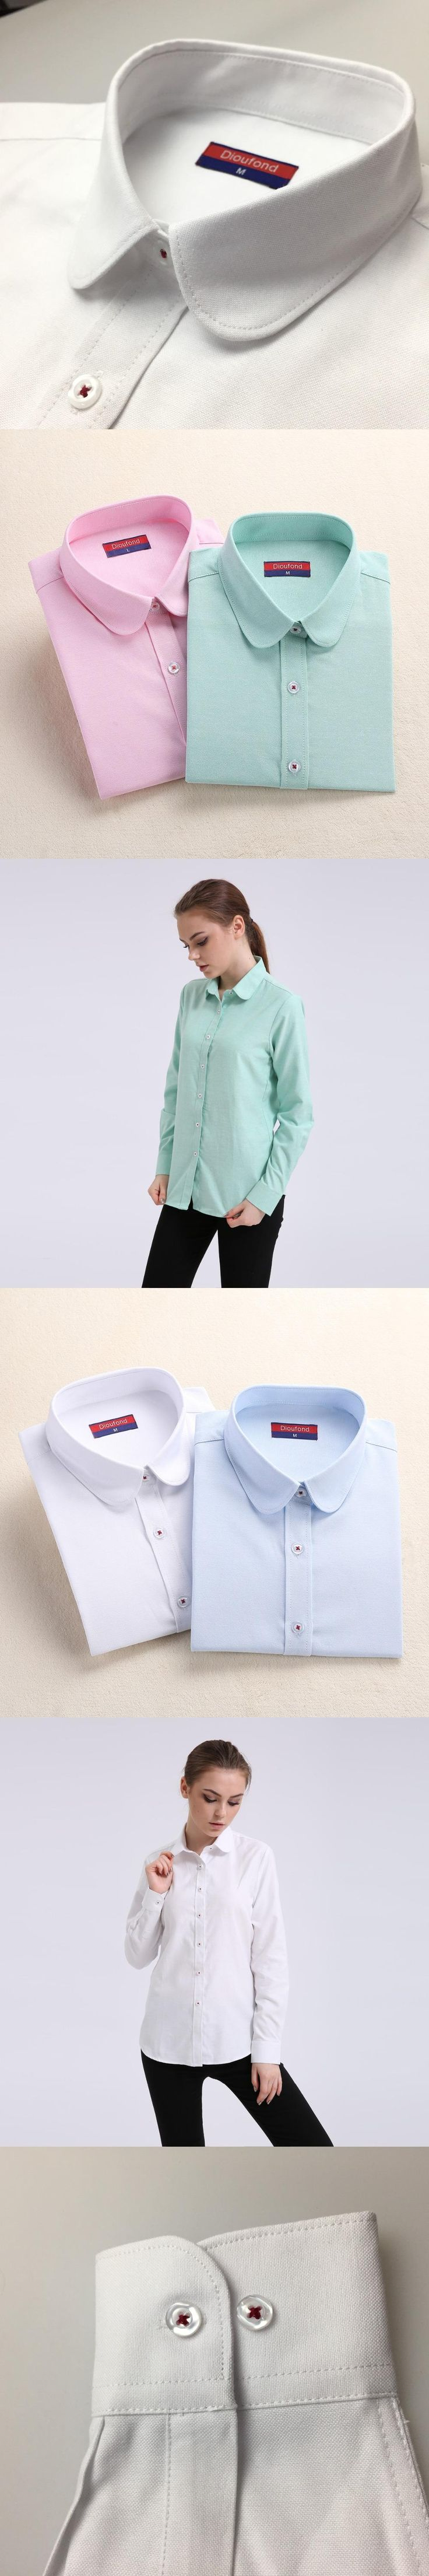 Dioufond Women Cotton Oxford Blouse Solid Long Sleeve Shirt Plus size Female Blusas Turn Down Collar Shirts Ladies Office Tops